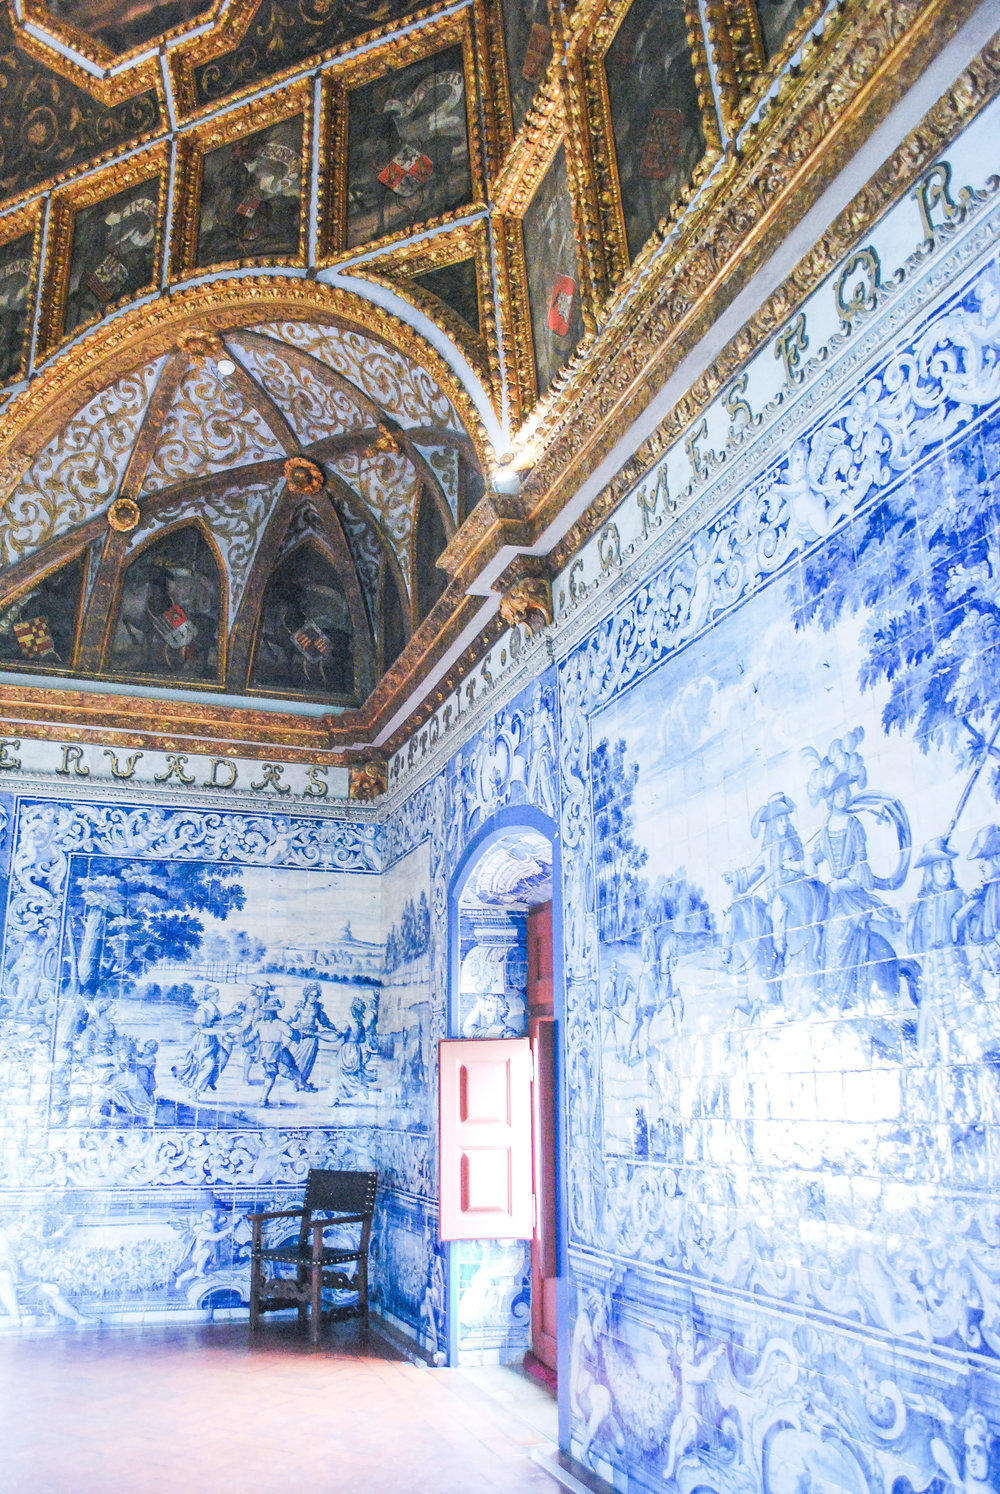 Palácio Nacional Sintra / National Palace of Sintra — Visiting Lisbon, Portugal? A Sintra day trip is a must! Read this guide on how to get to Sintra and what to do when you're there.